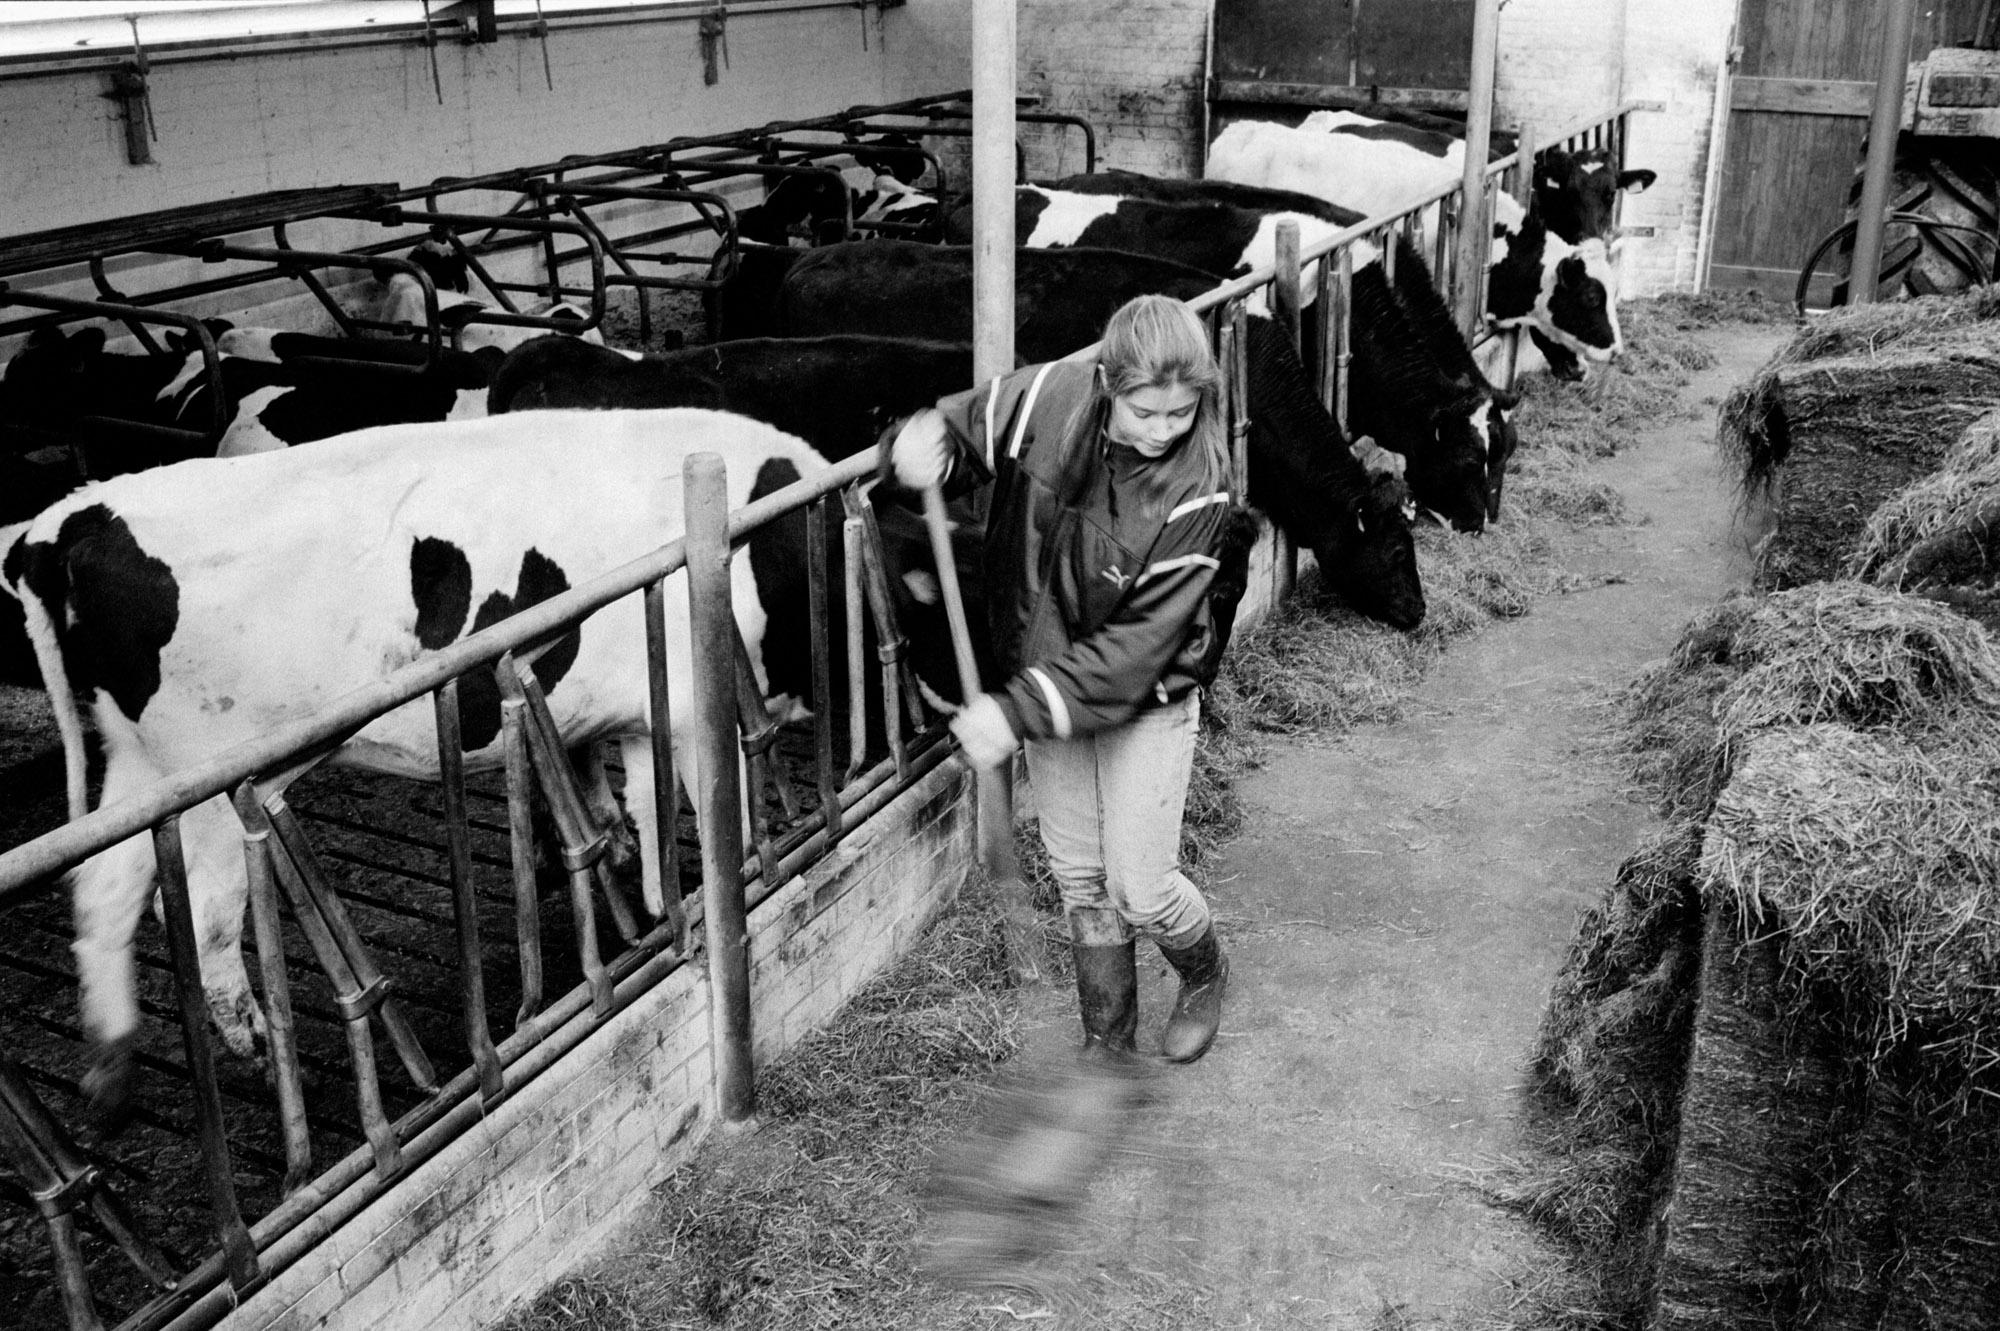 Mirjam works in the barn during her weekly apprenticeship for the agricultural school on the dairy farm of Piet Verhoef. Nieuwerbrug, The Netherlands. February 1995.